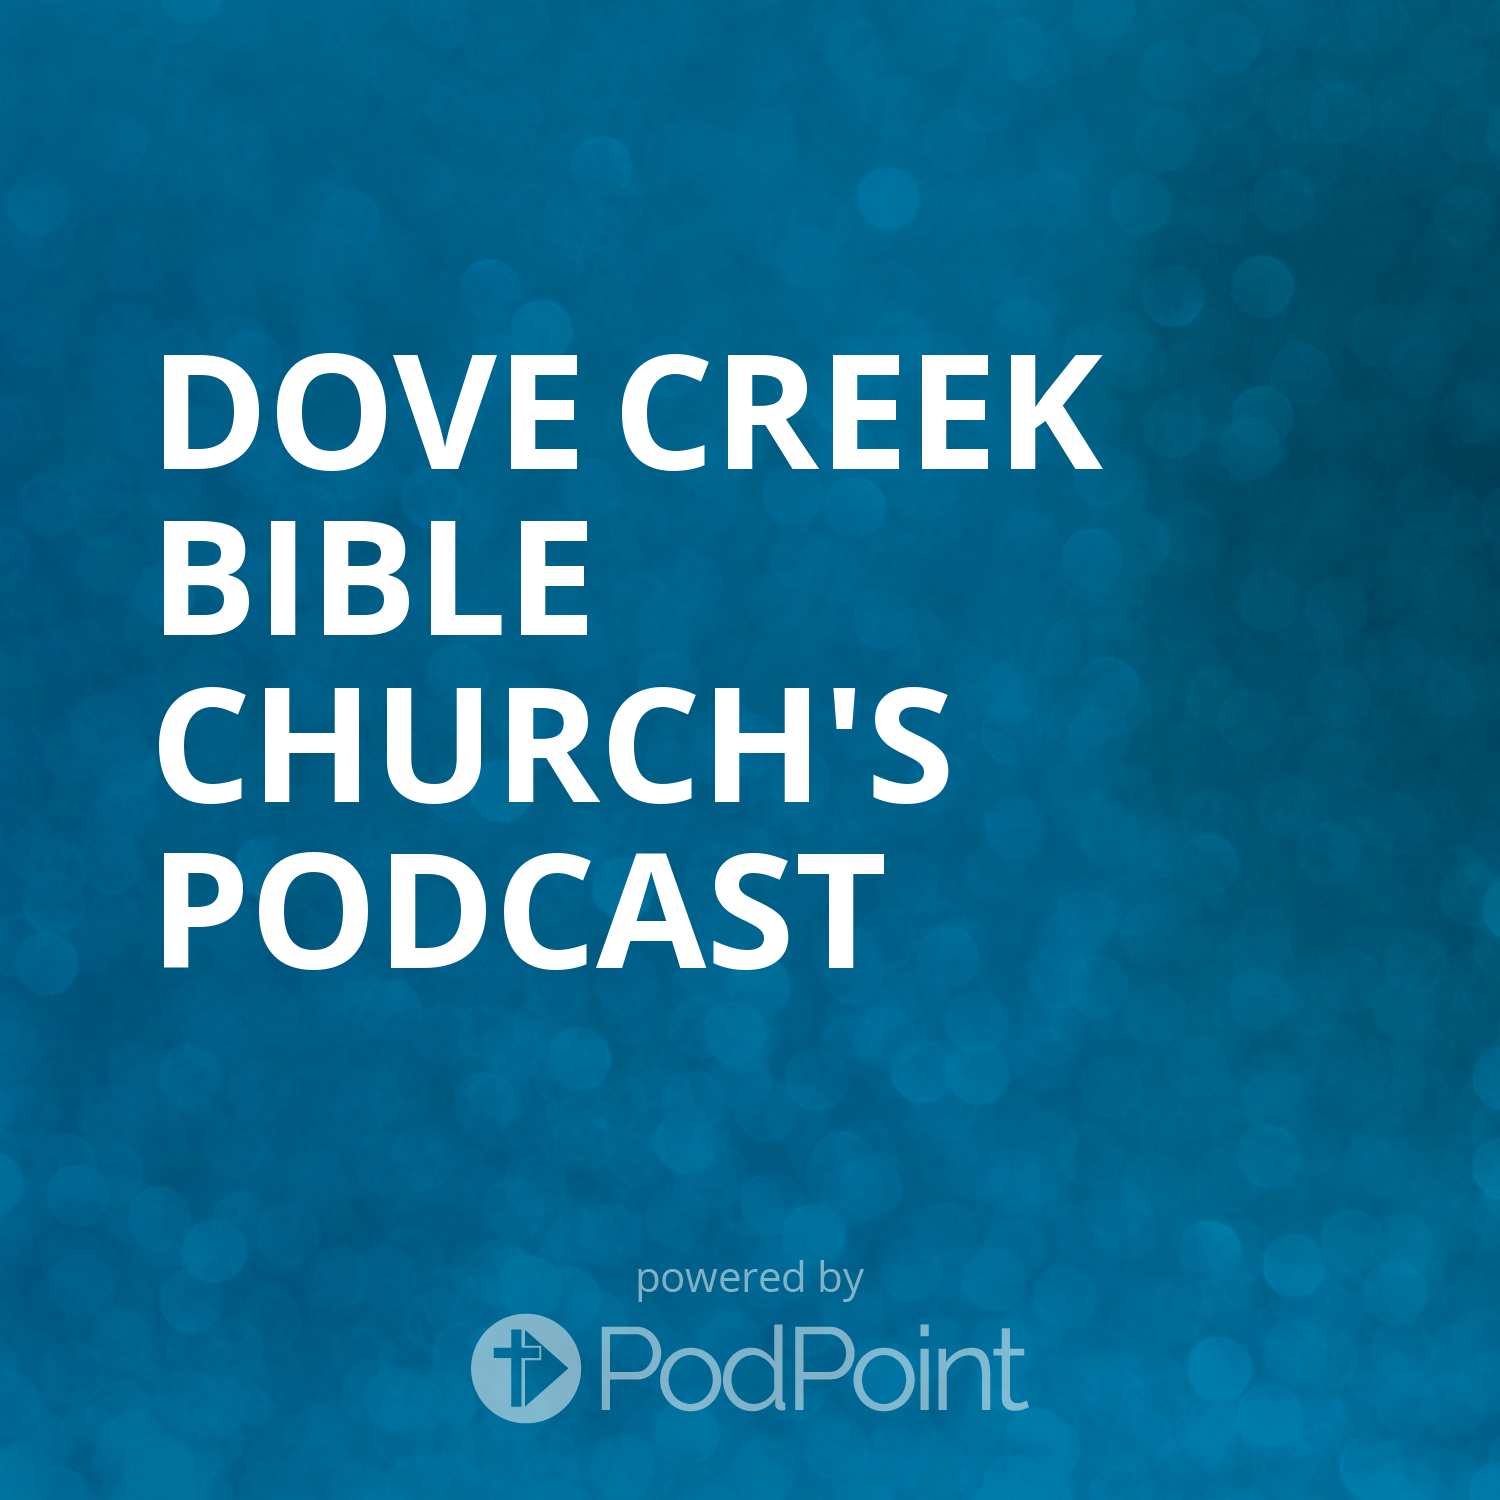 Dove Creek Bible Church's Podcast